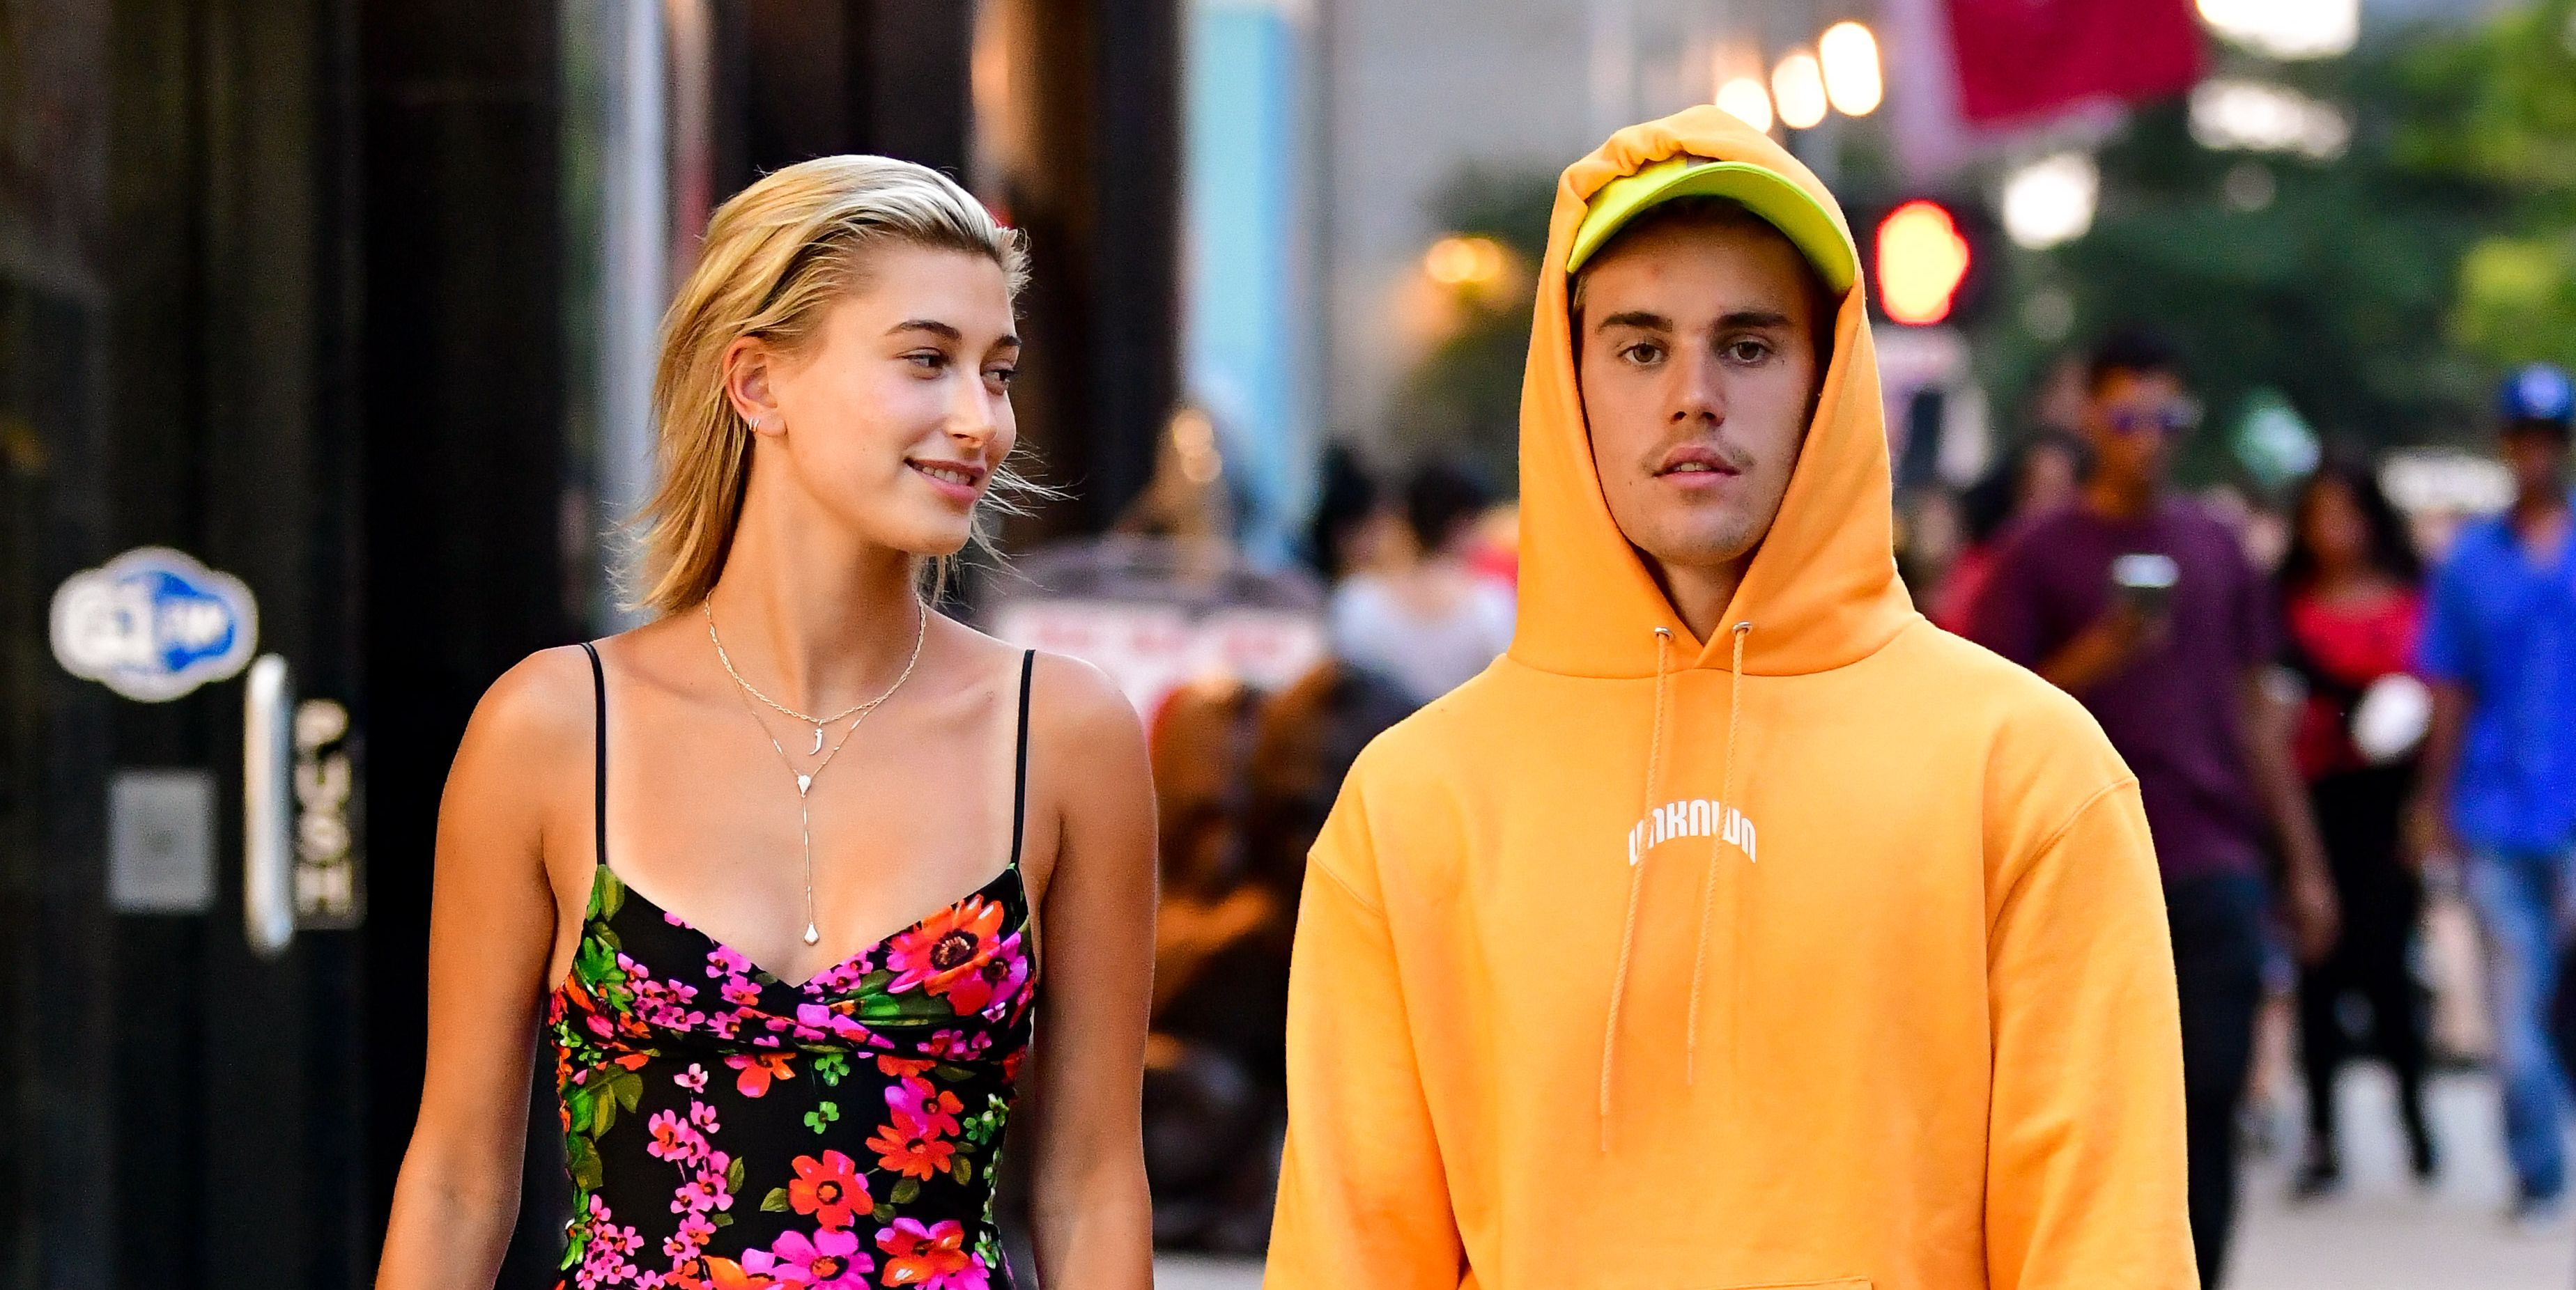 Justin Bieber Just Confirmed Hailey Baldwin Has Been a Belieber This Entire Time